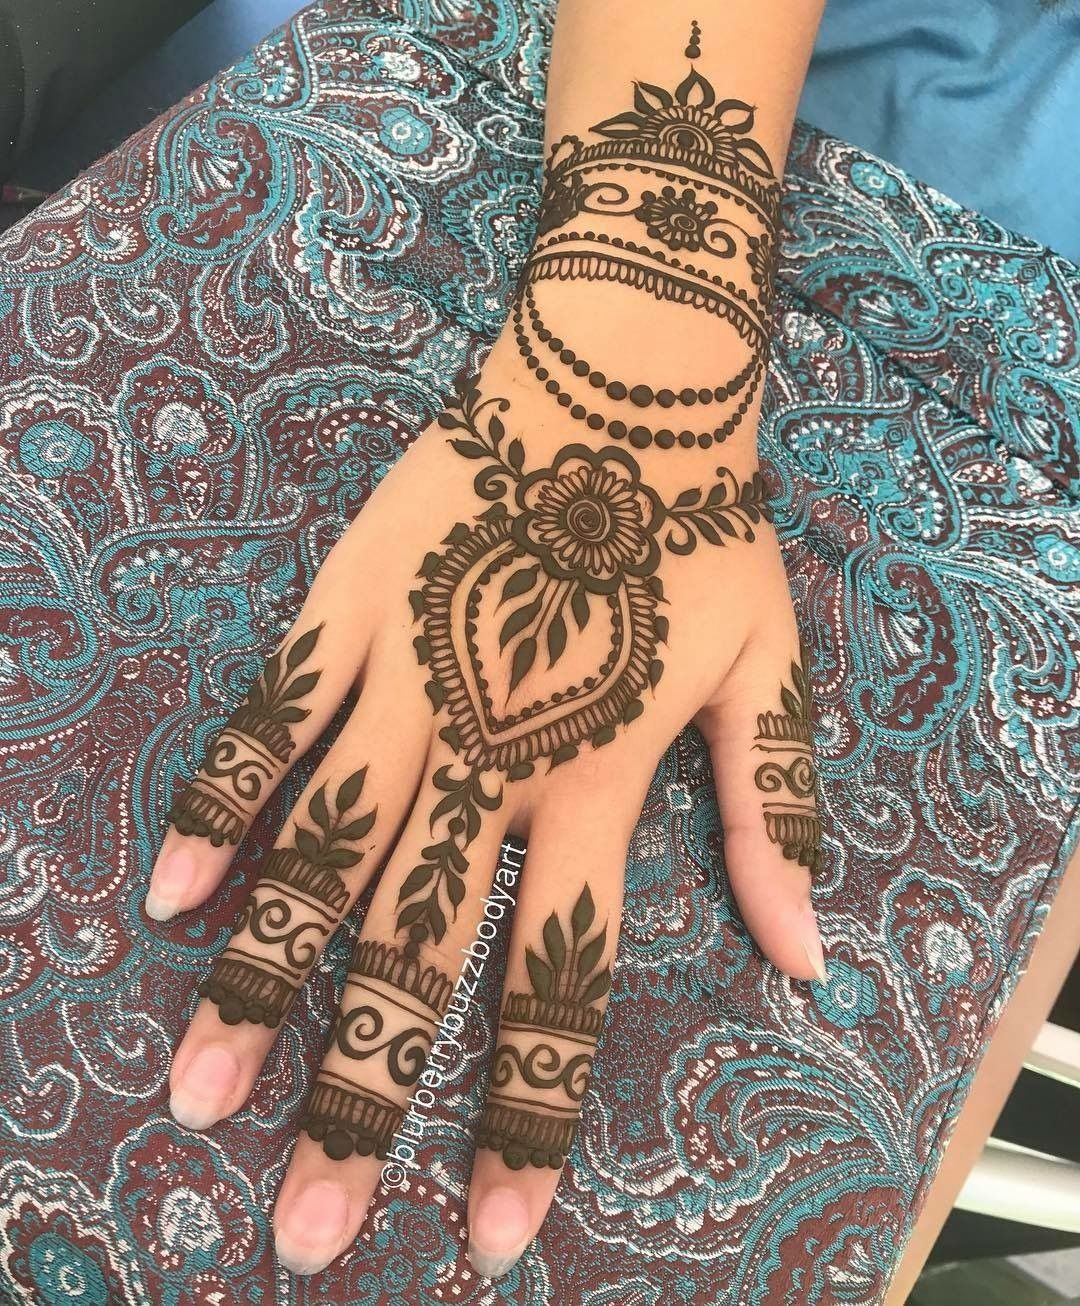 Pin by Leesa Freward on Henna design and inspiration (With